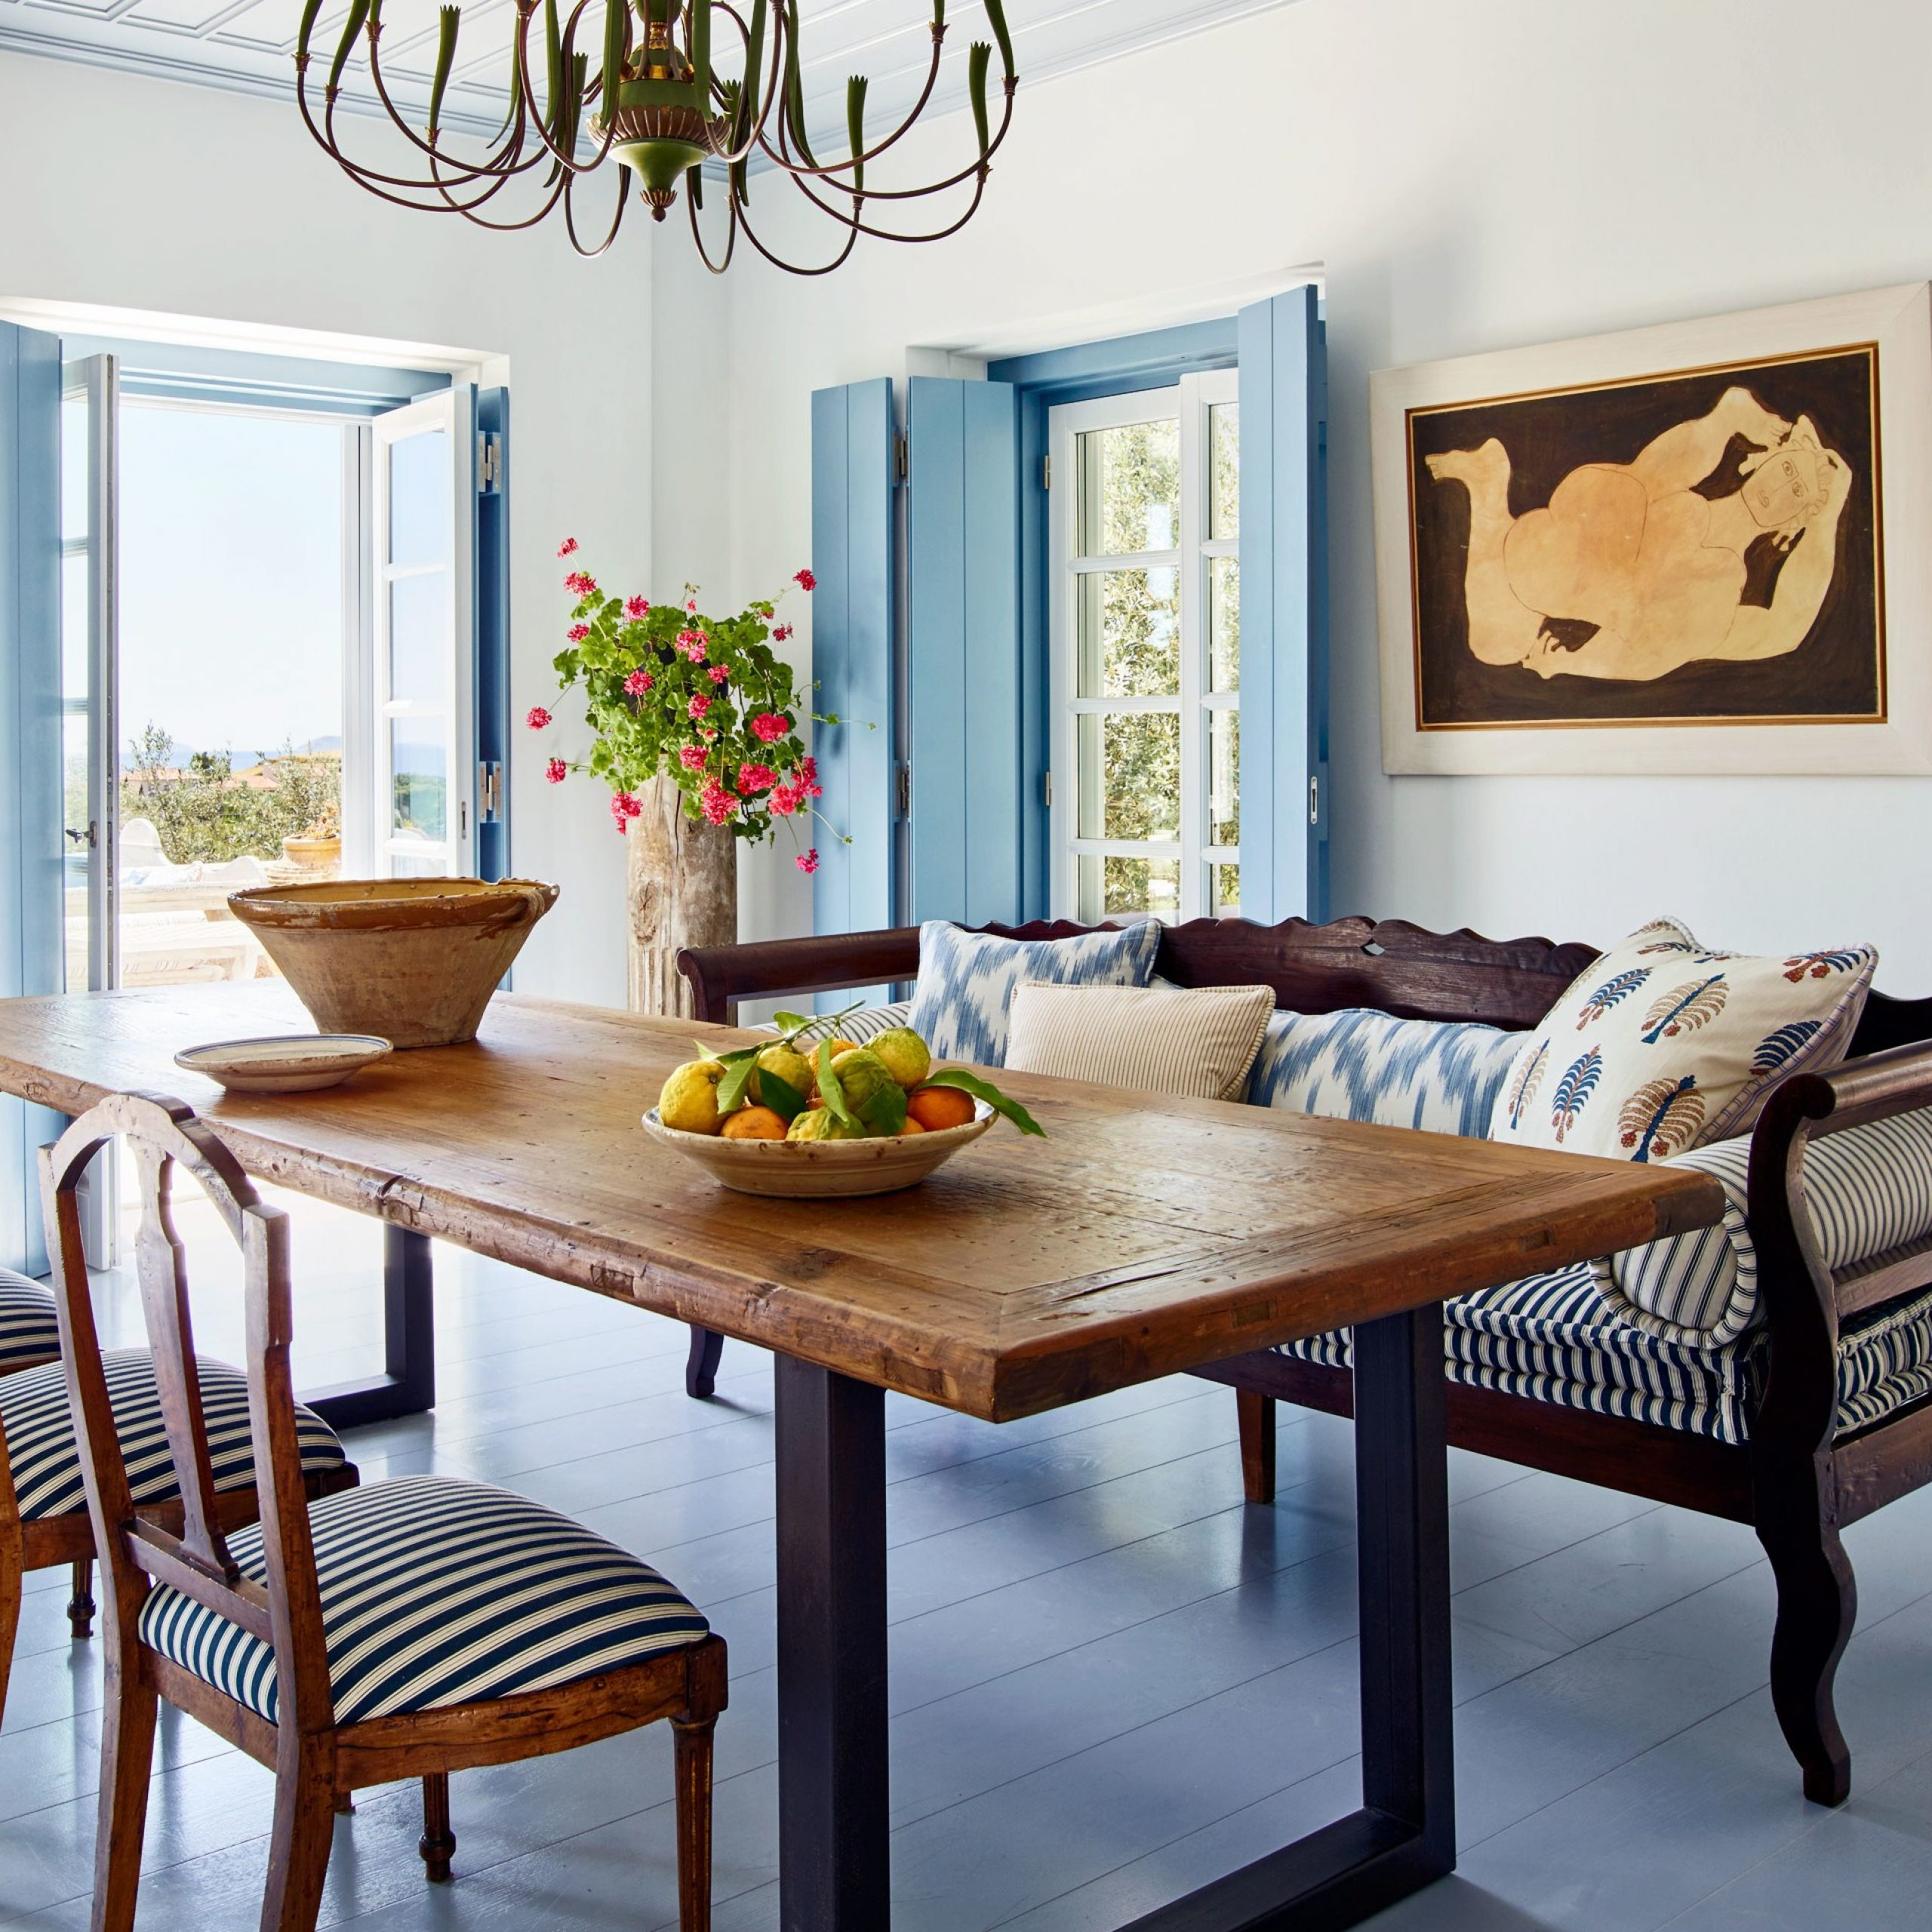 Walnut And Antique White Finish Contemporary Country Dining Tables Throughout Widely Used Tips To Mix And Match Dining Room Chairs Successfully (View 7 of 25)